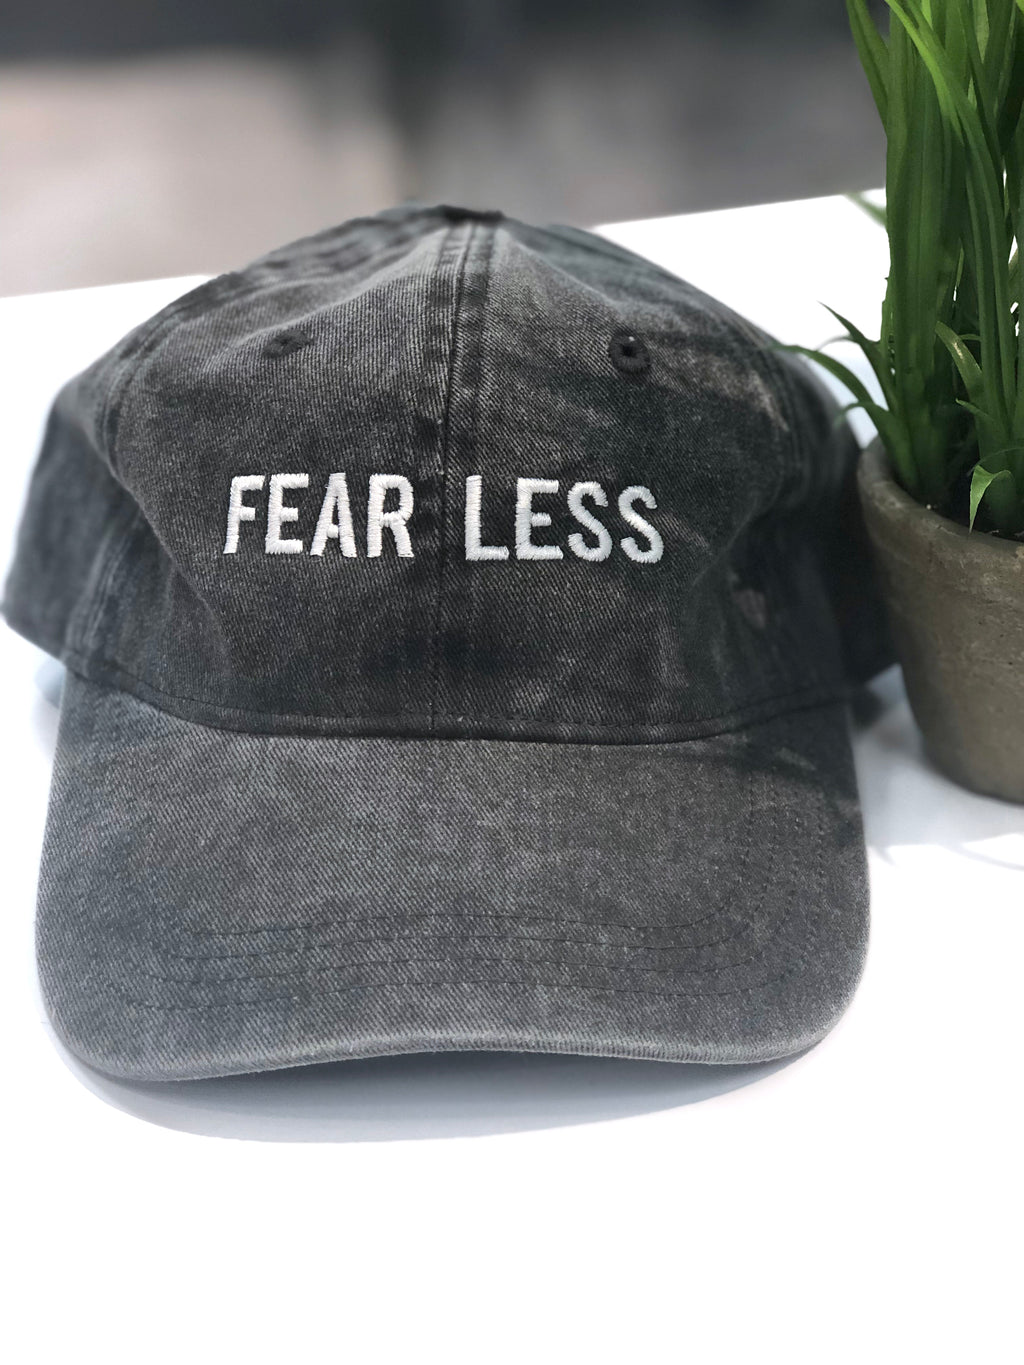 FEARLESS Baseball Hat Gray - Mineral Washed